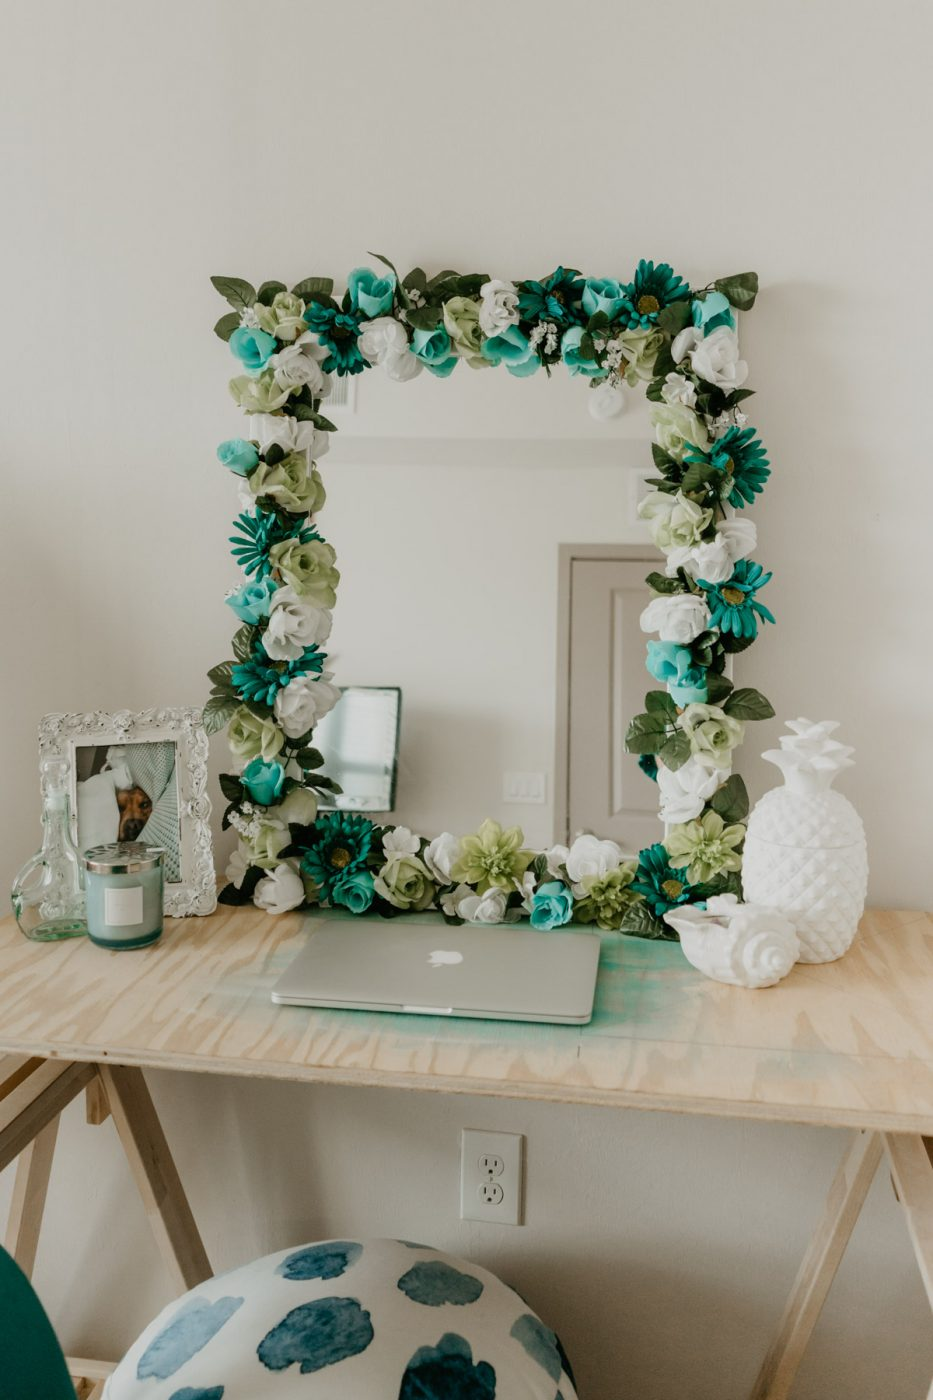 DIY Flower Framed Mirror - Sweet Teal